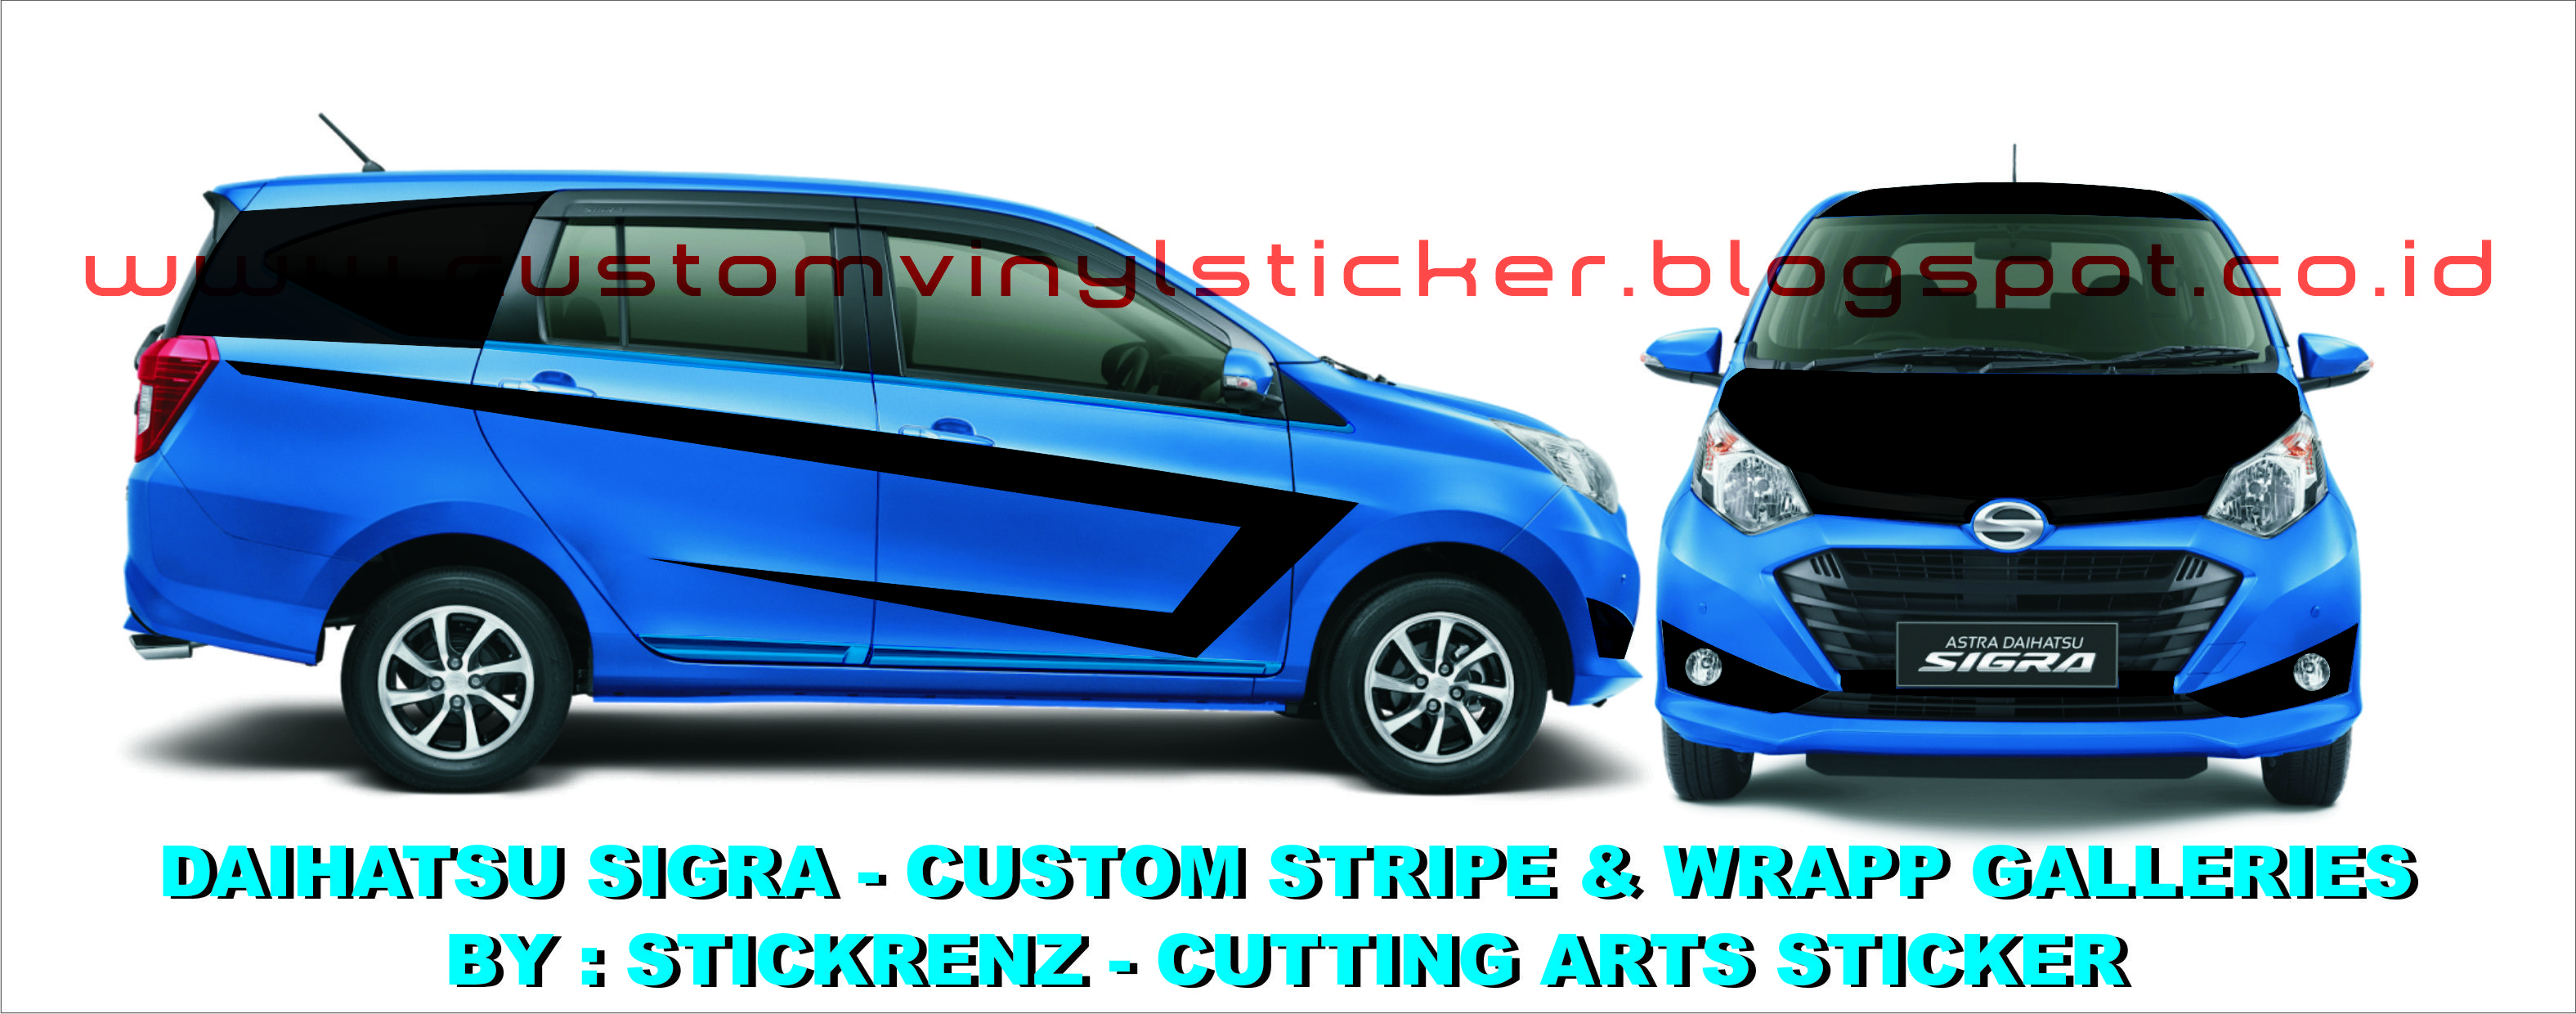 Daihatsu Sigra Custom Stripe Wrapp Concept Galleries 001